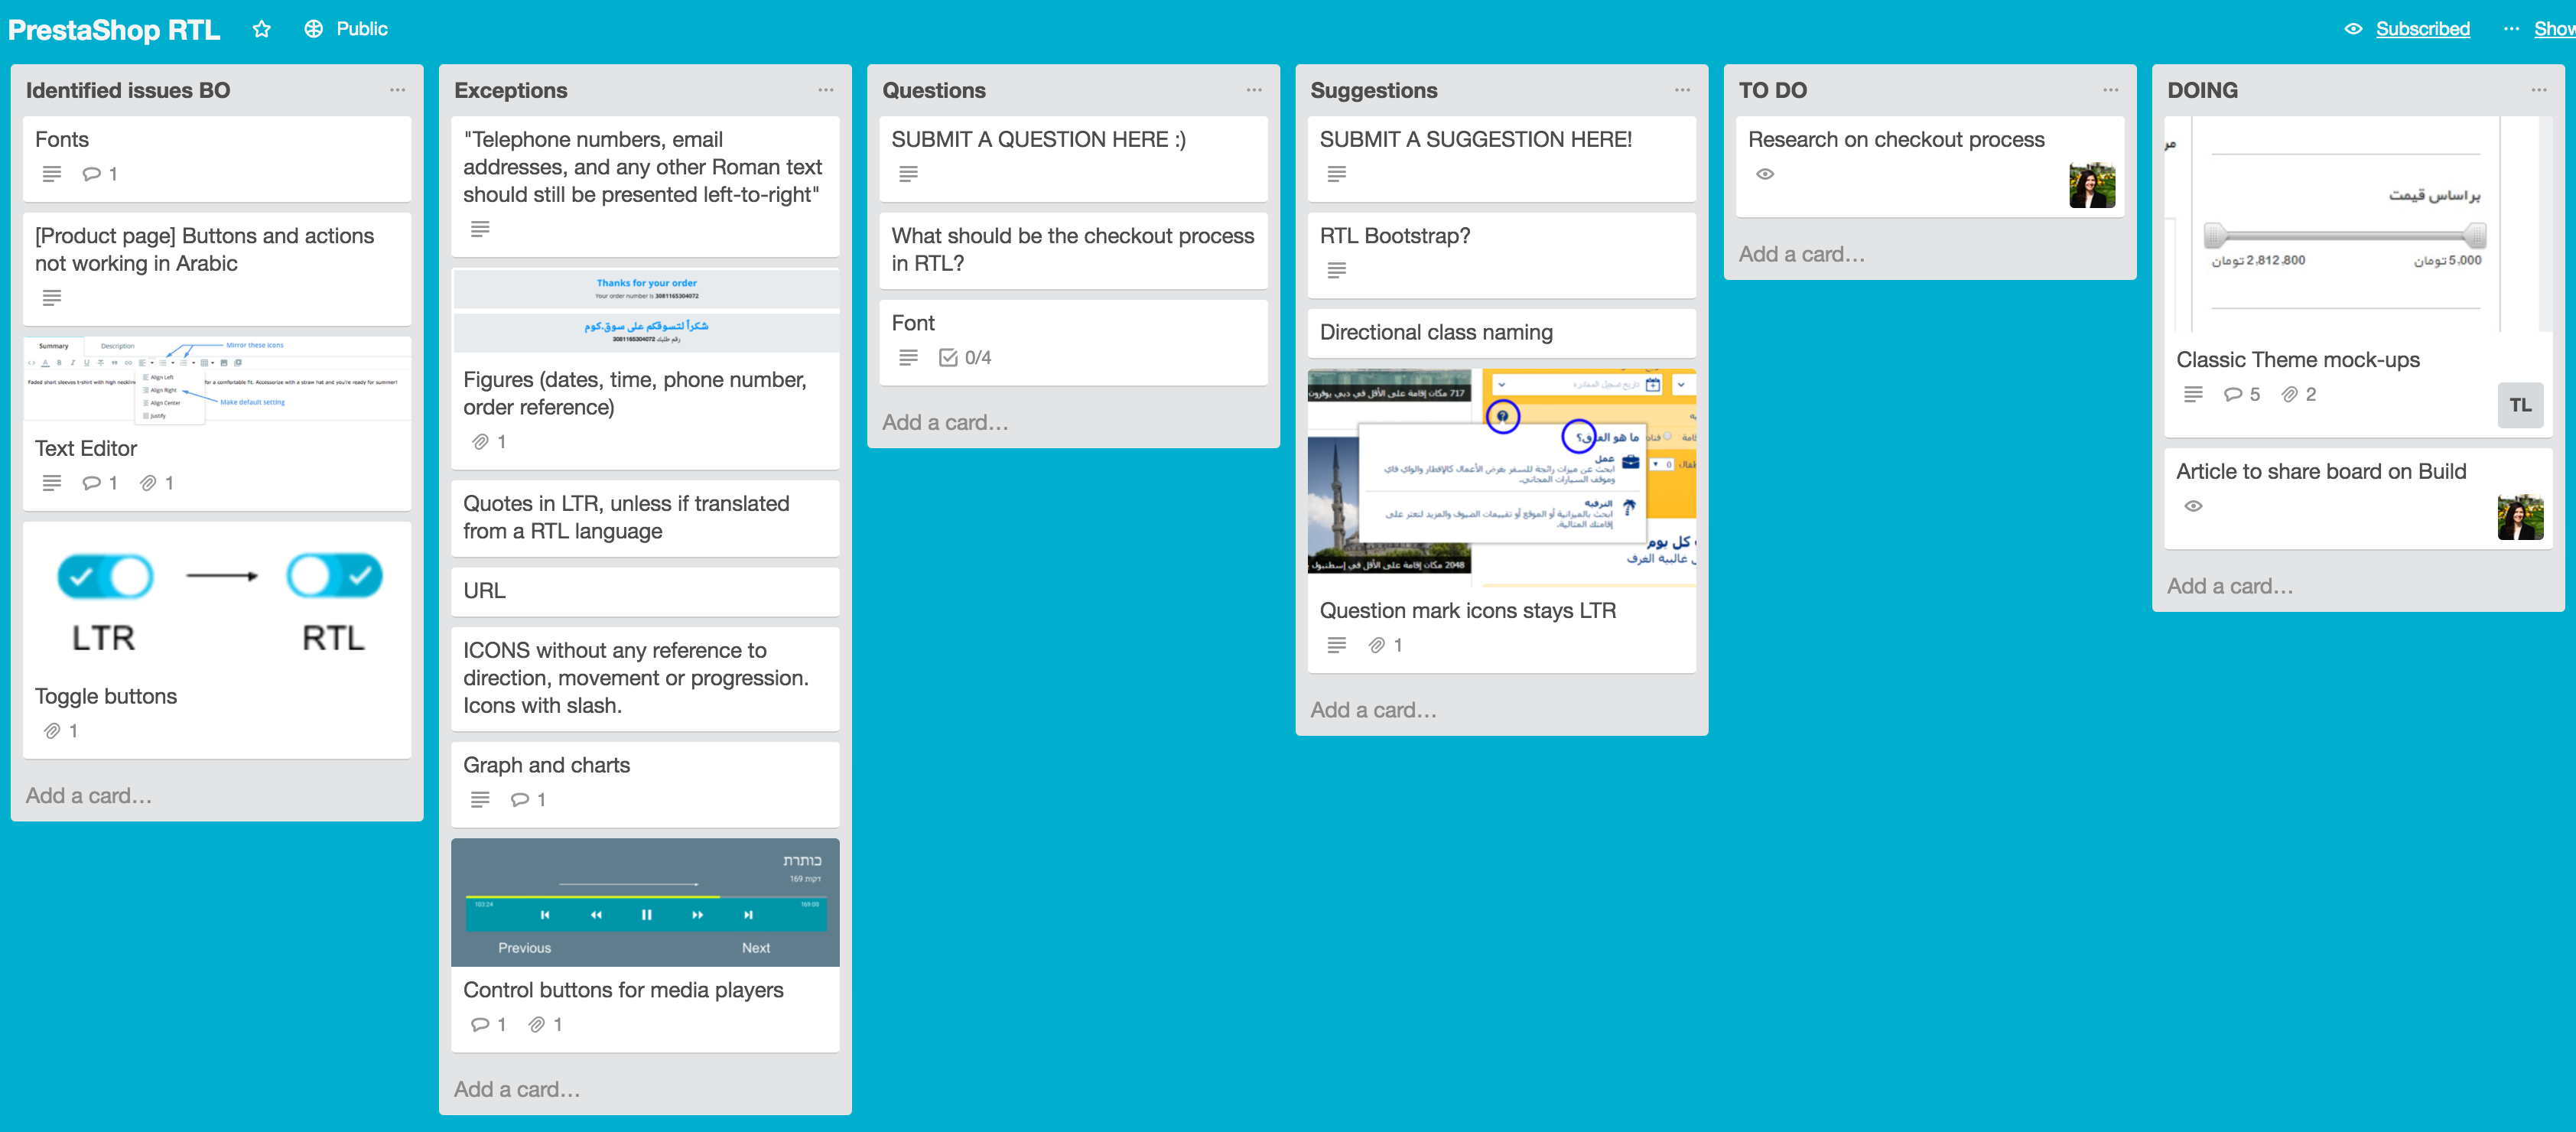 PrestaShop RTL project Trello board